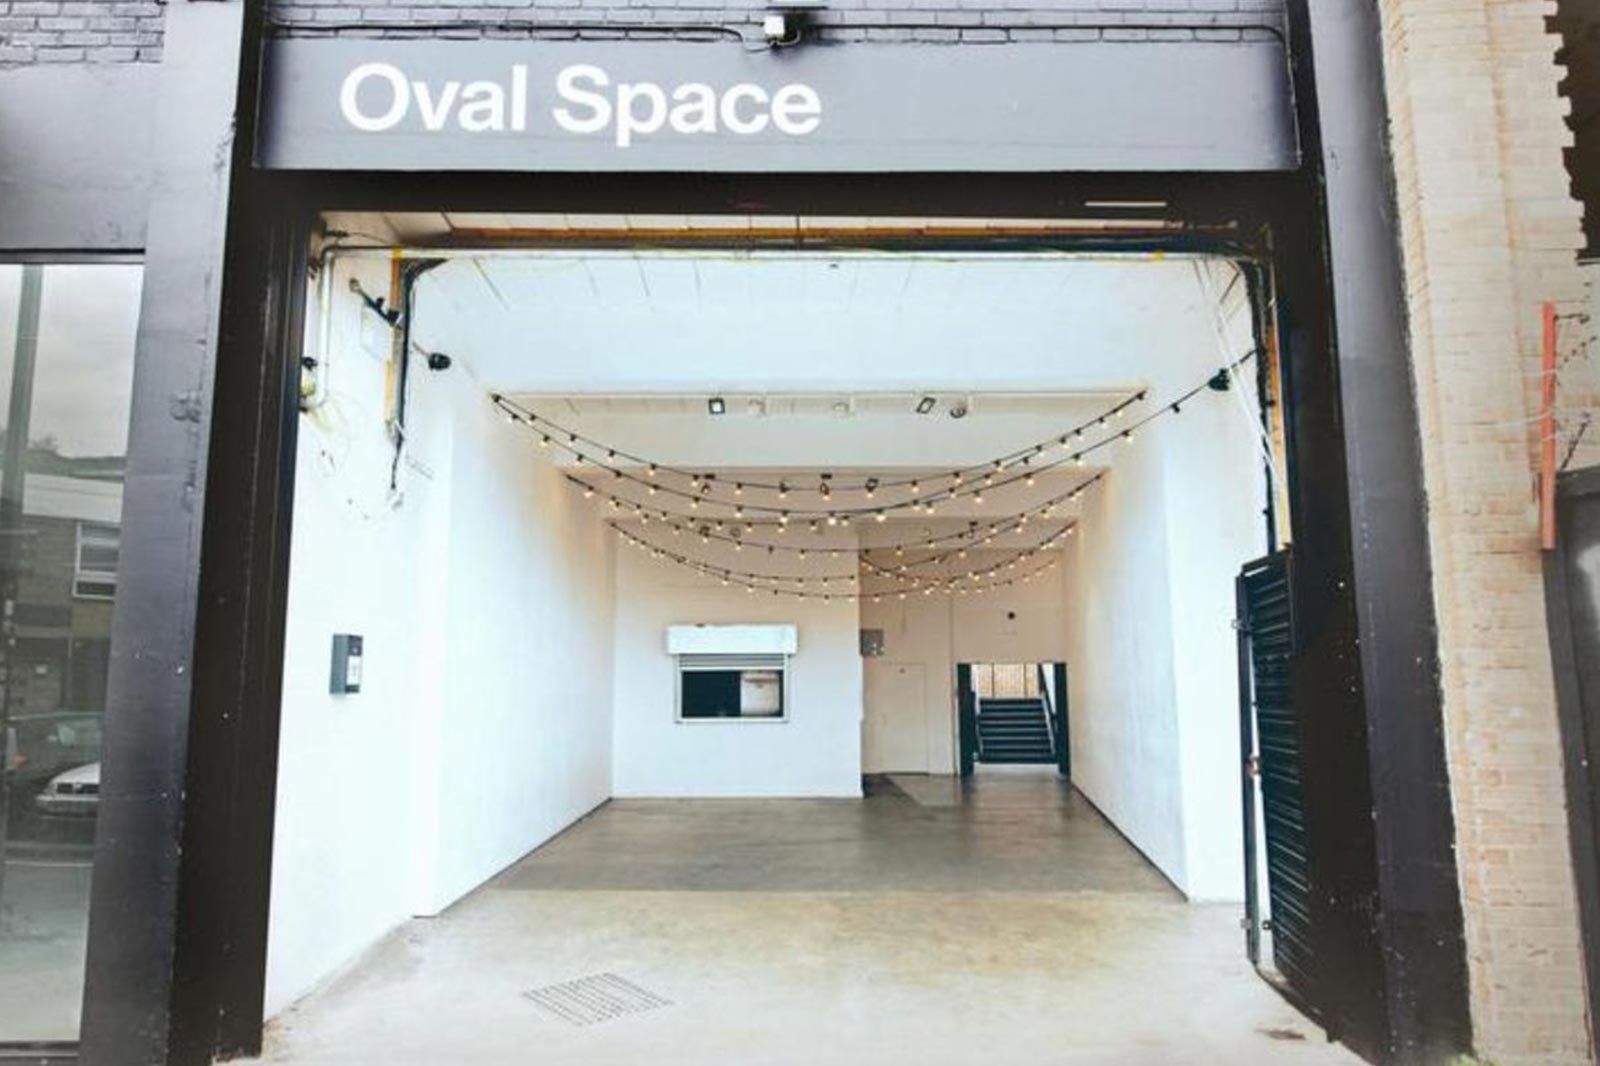 Oval space location